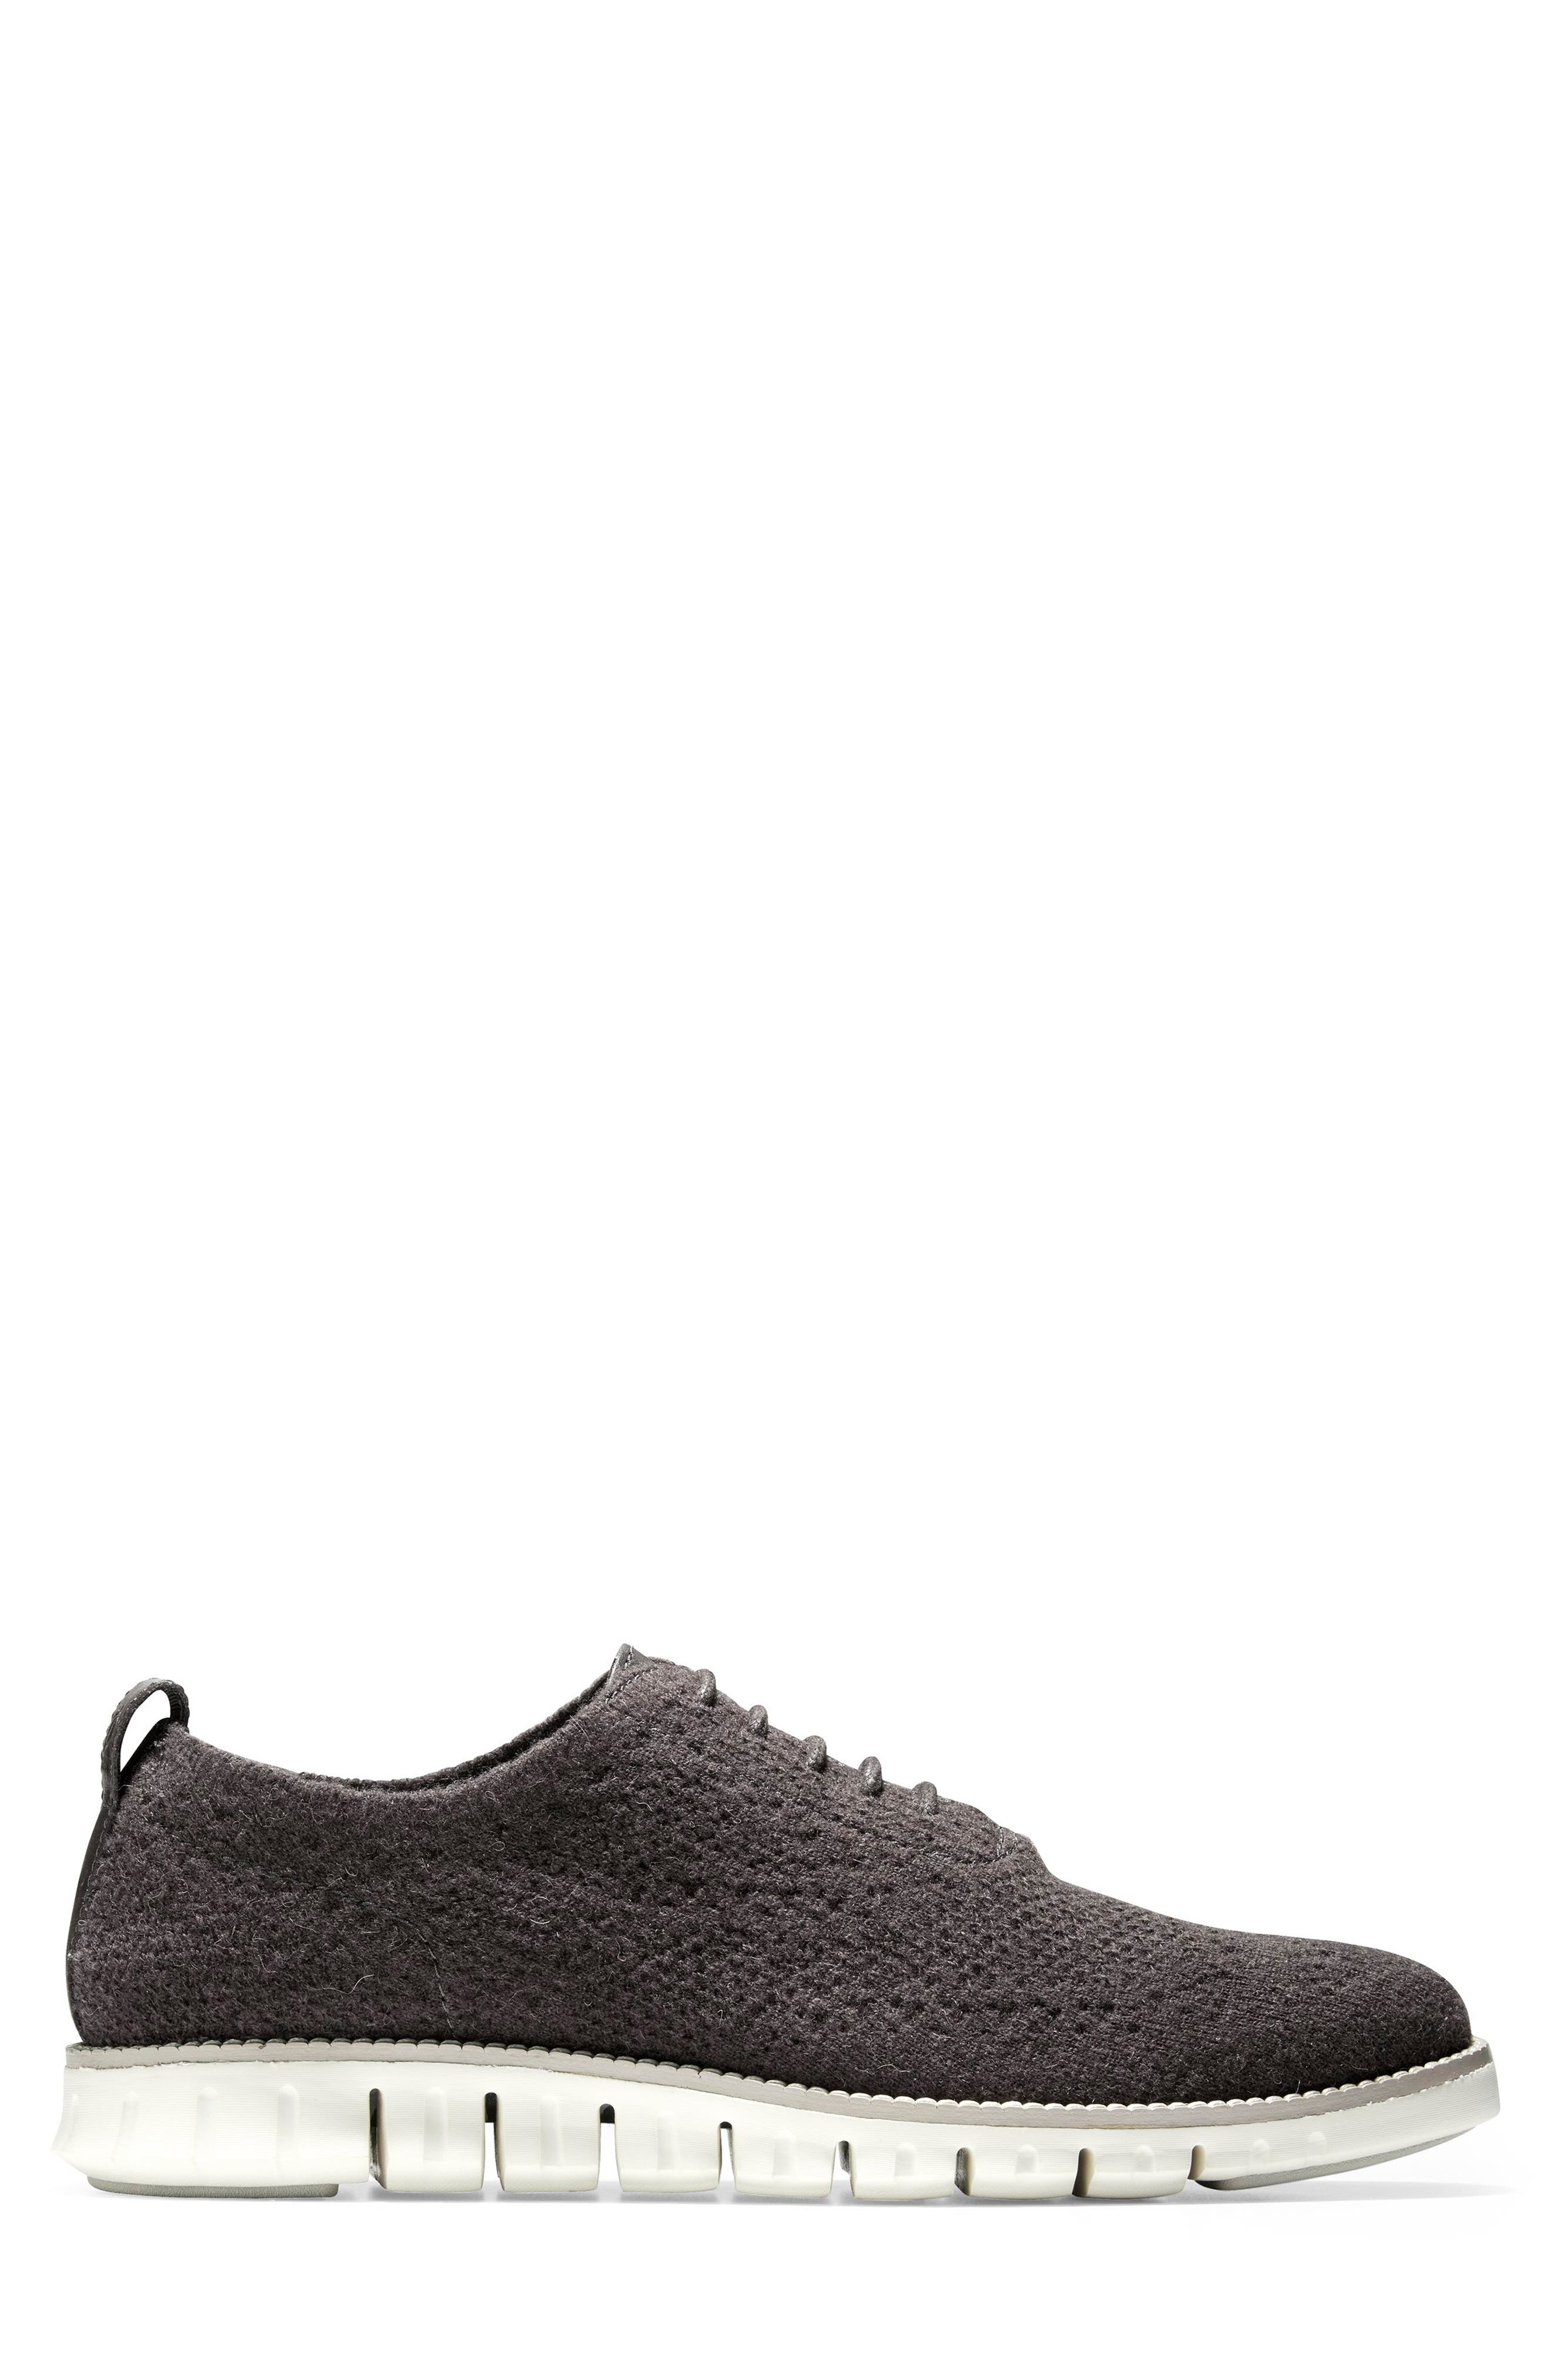 ZeroGrand Stitchlite<sup>™</sup> Water Resistant Wool Oxford,                             Alternate thumbnail 3, color,                             DARK ROAST WOOL KNIT/ IVORY